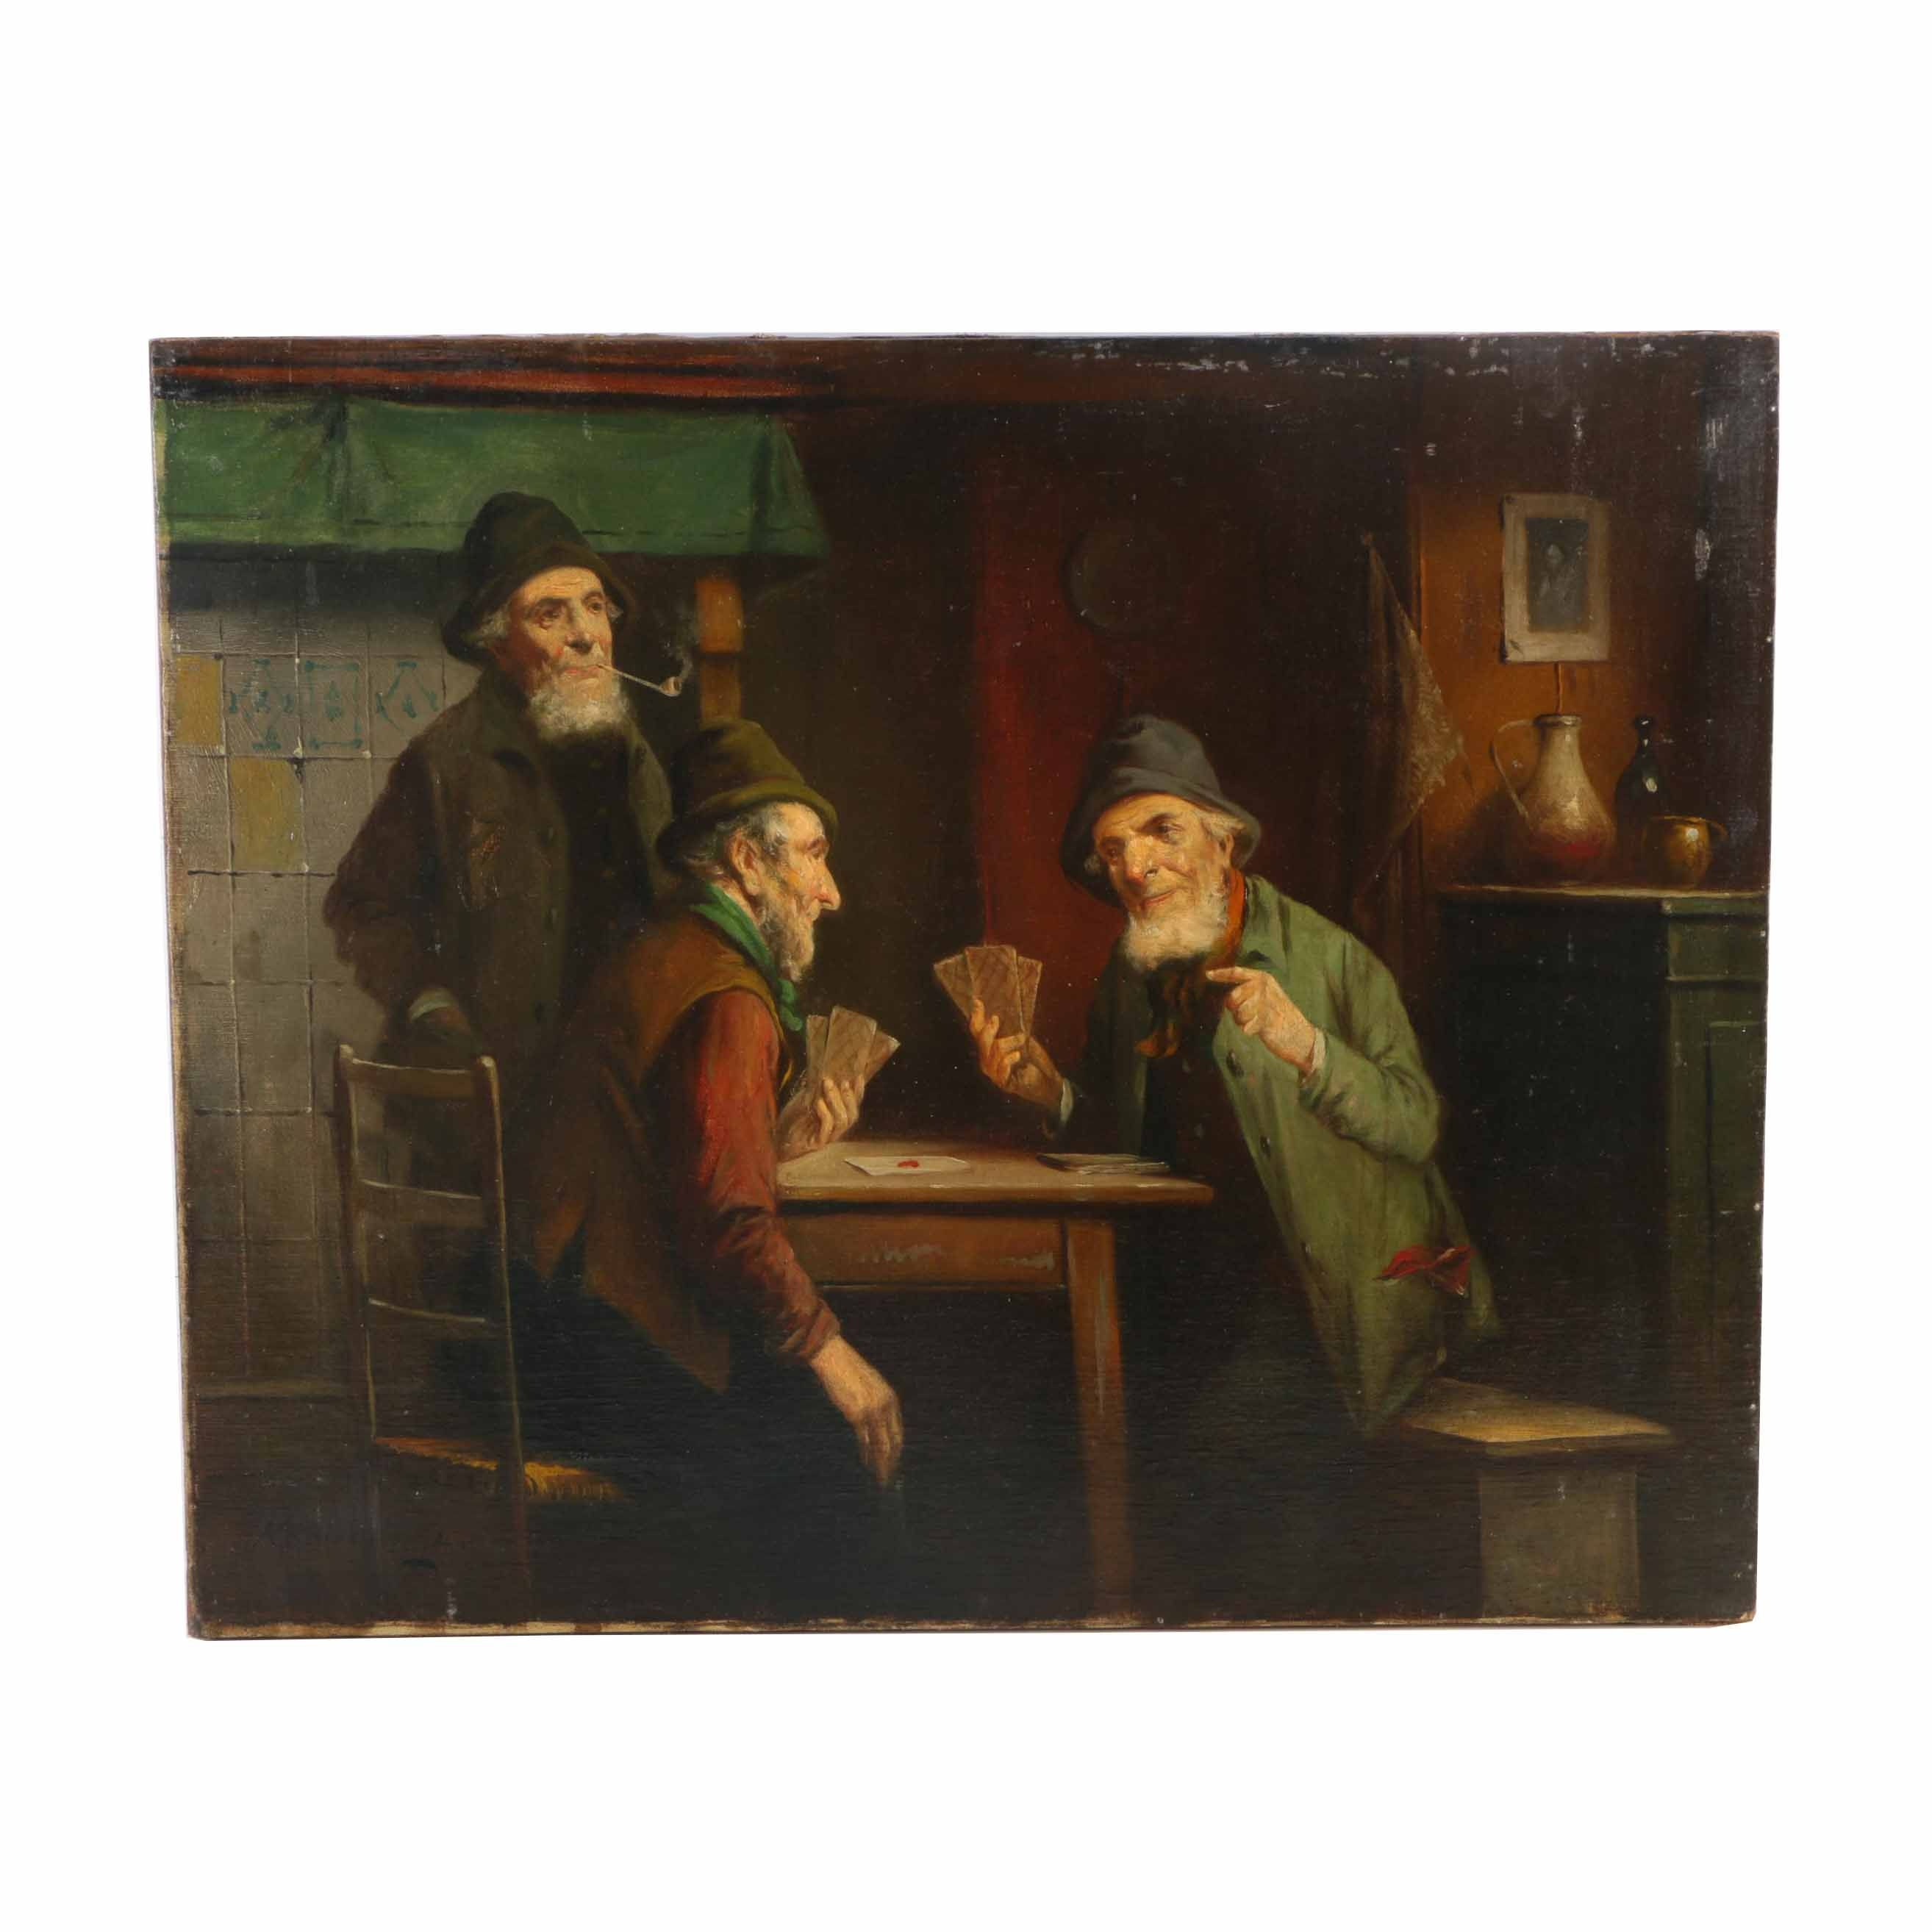 Interior Oil on Canvas Genre Scene of a Card Game